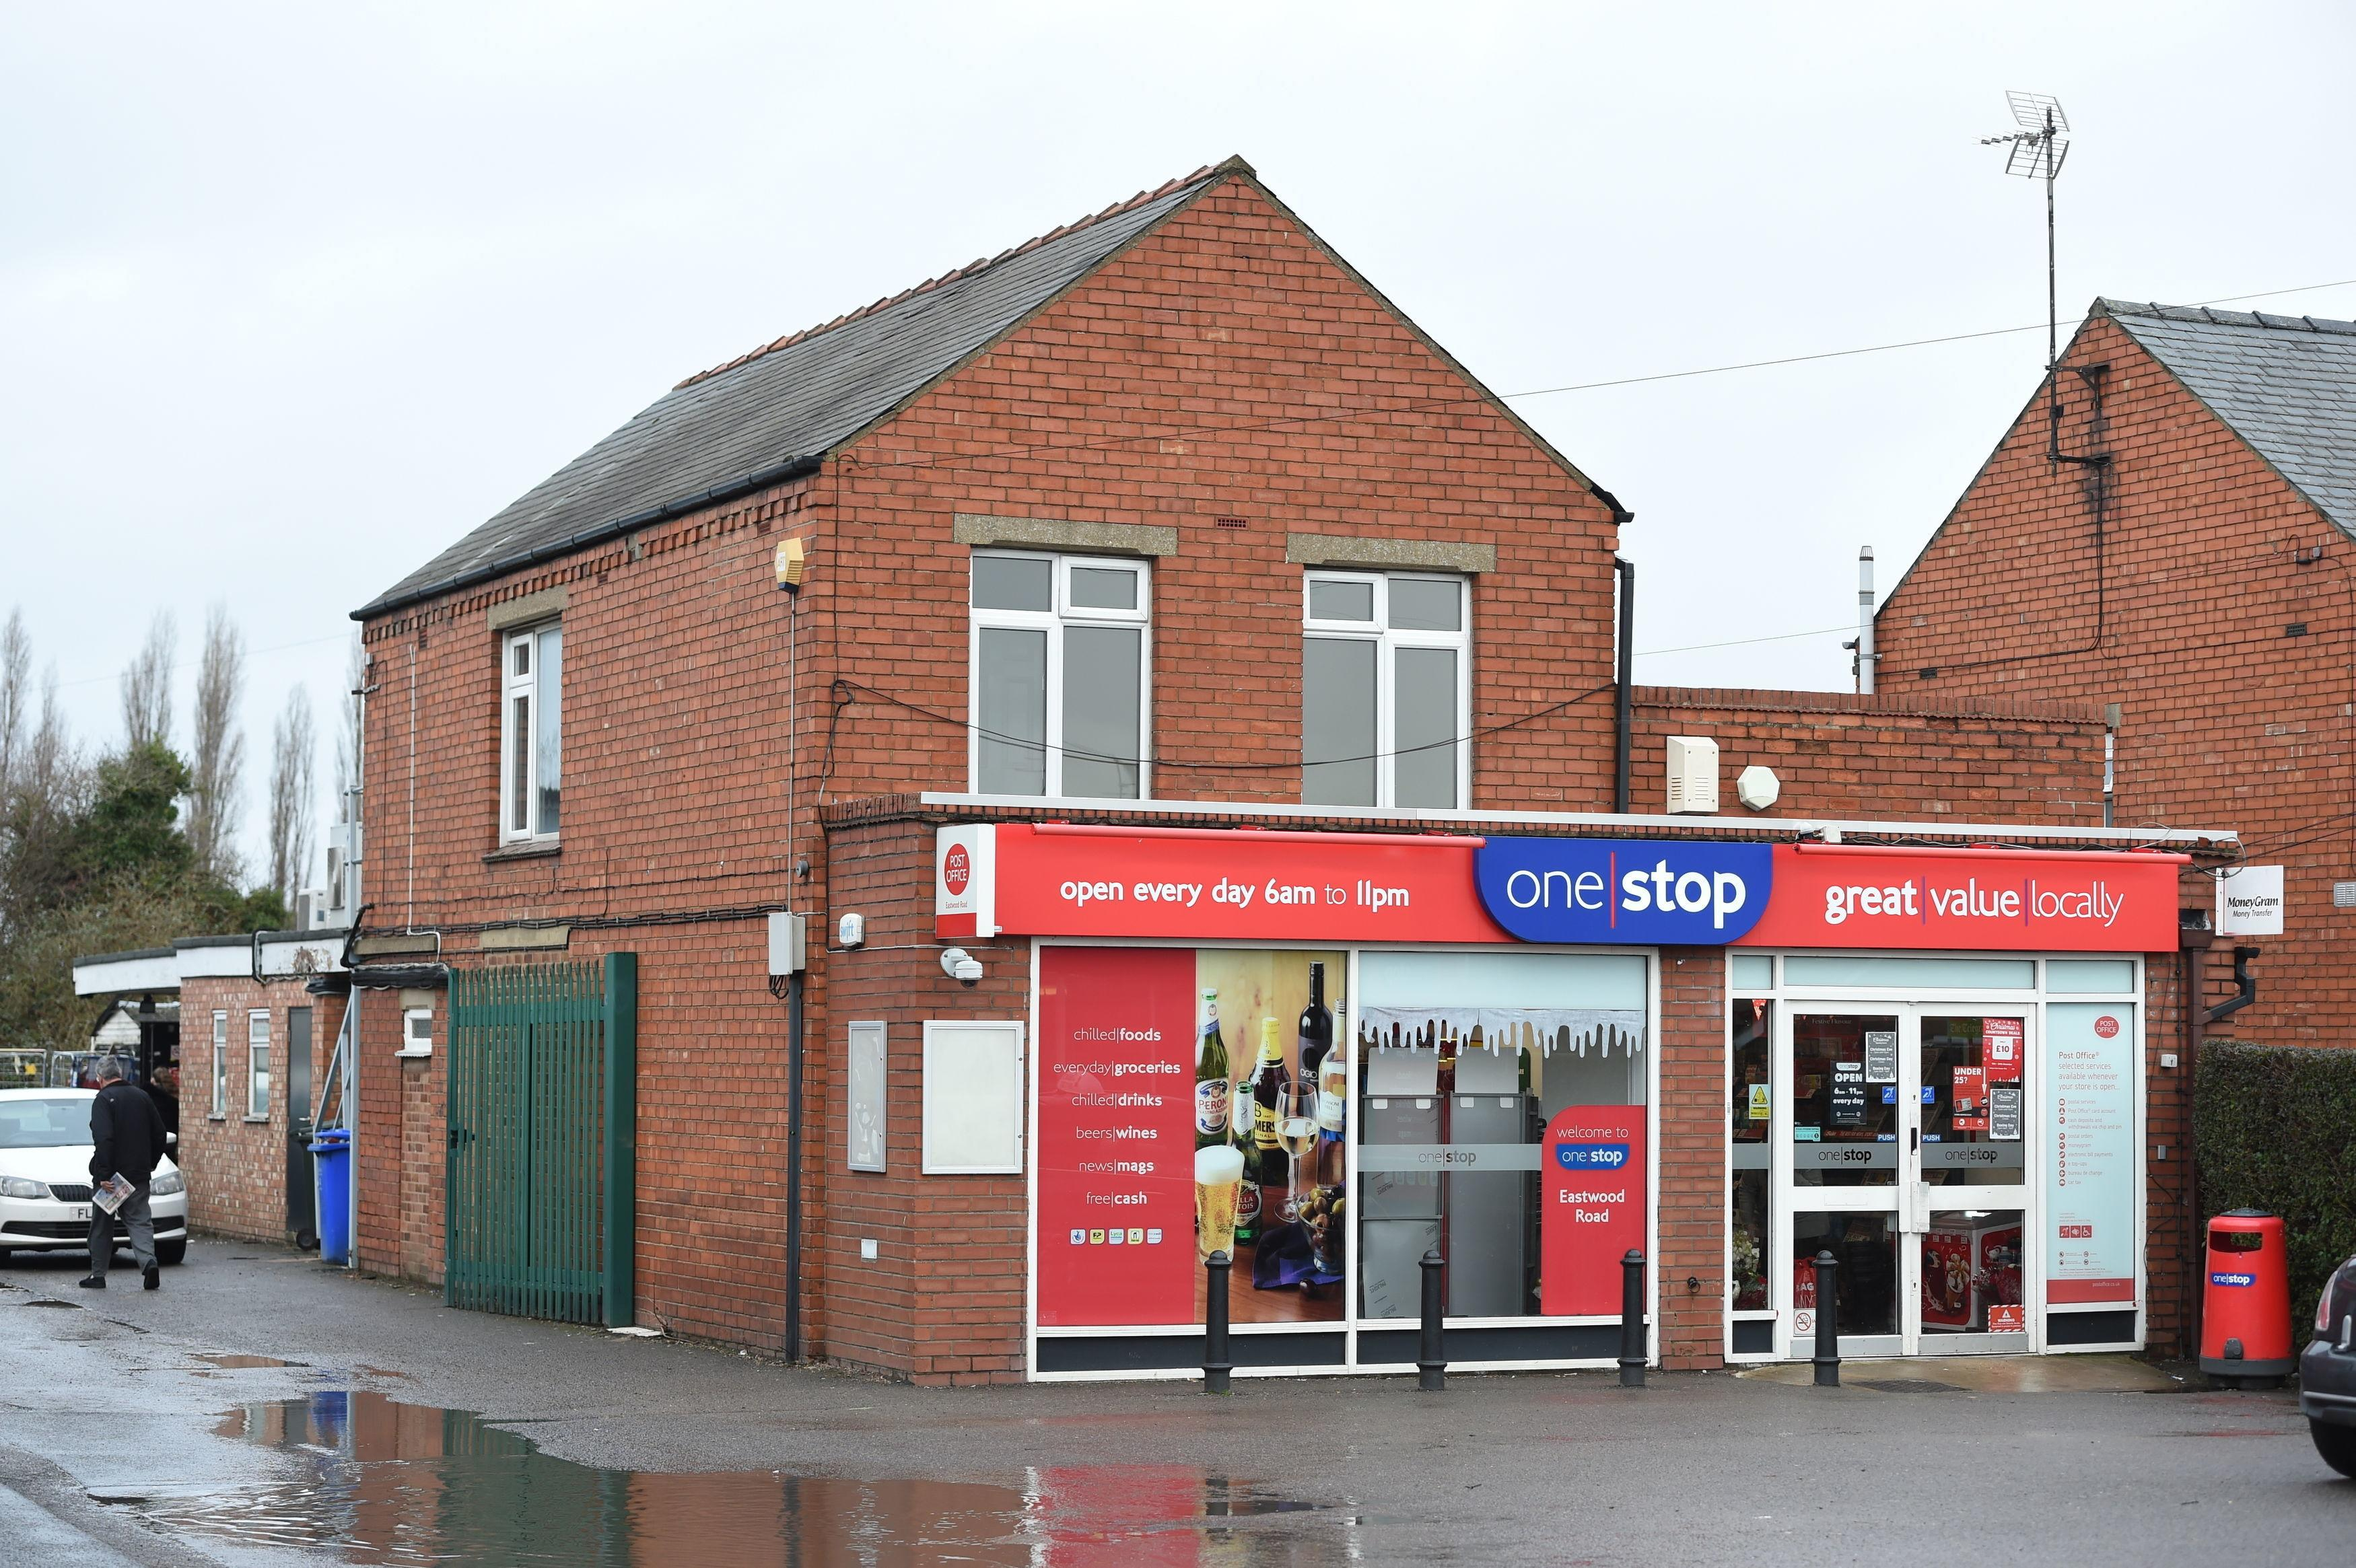 The post office in Boston, Lincolnshire, where Andrew Clark bought his winning ticket. (PA)